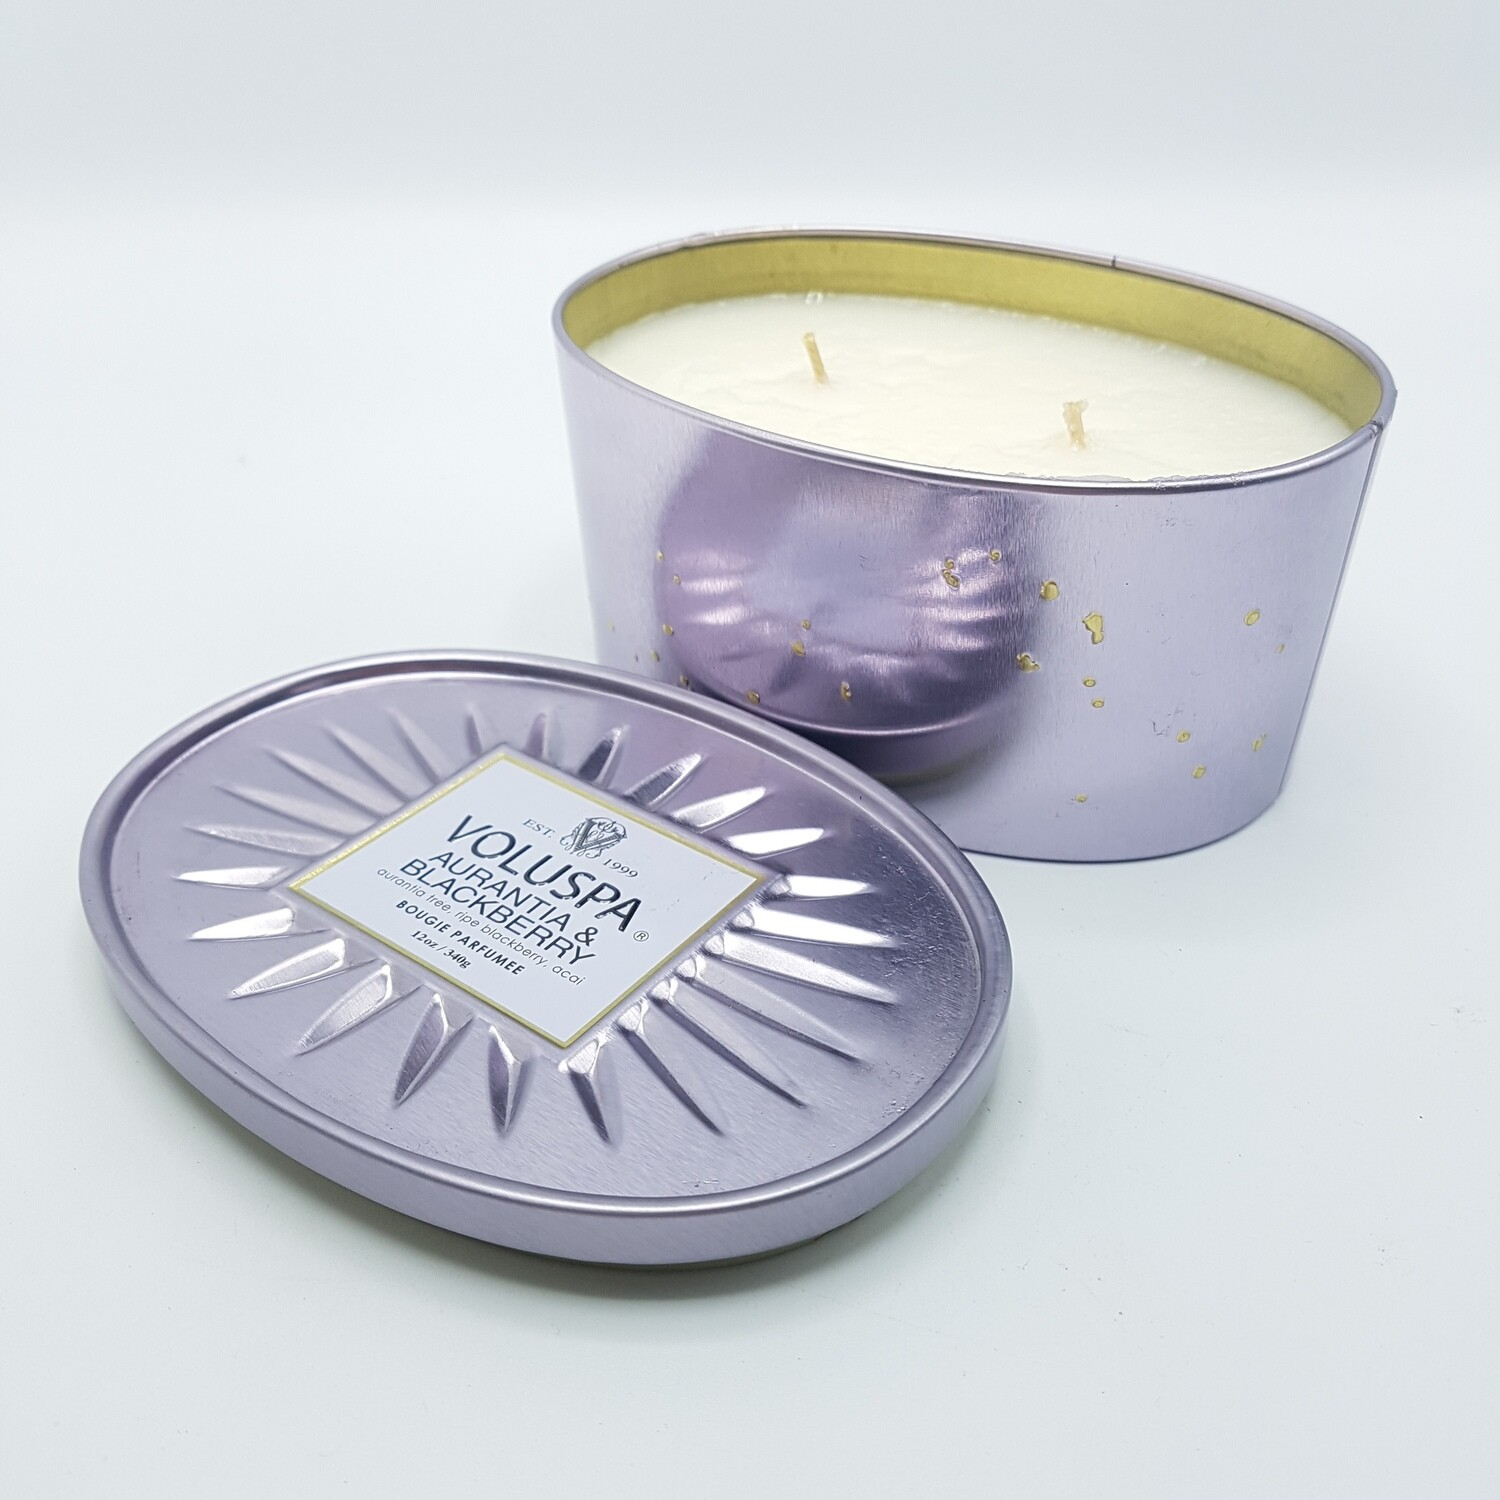 DECO OVAL TIN 2WICK Aurantia & Blackberry VOLUSPA